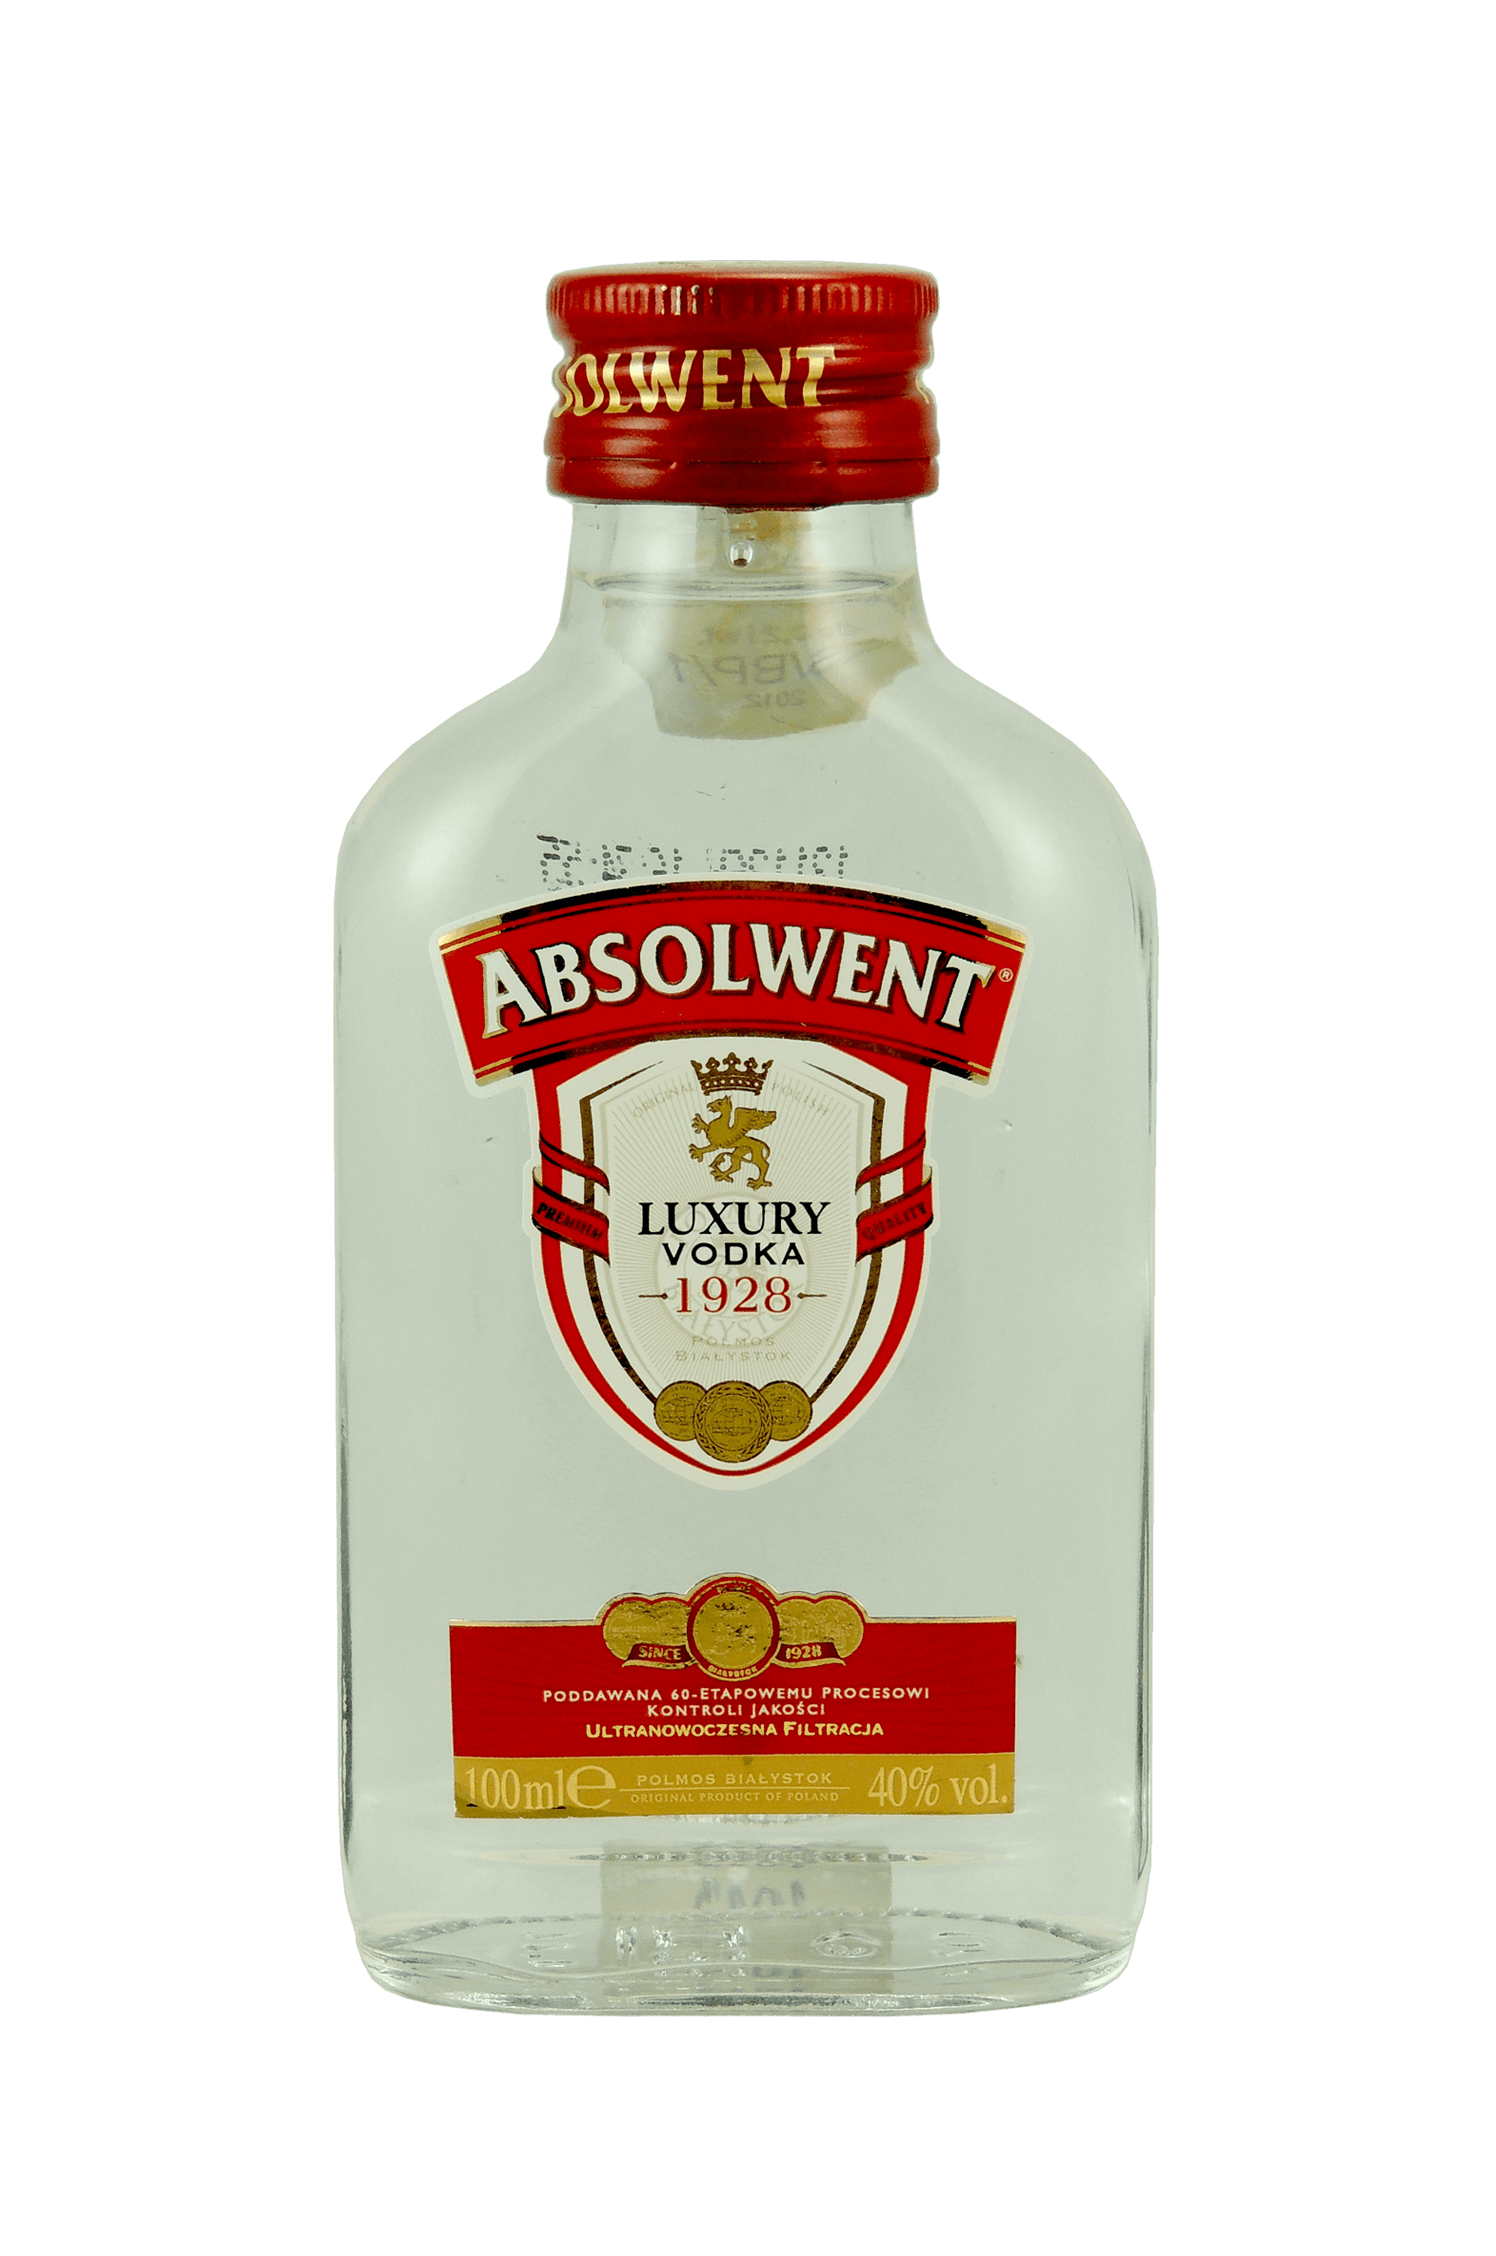 Absolwent Luxury Vodka